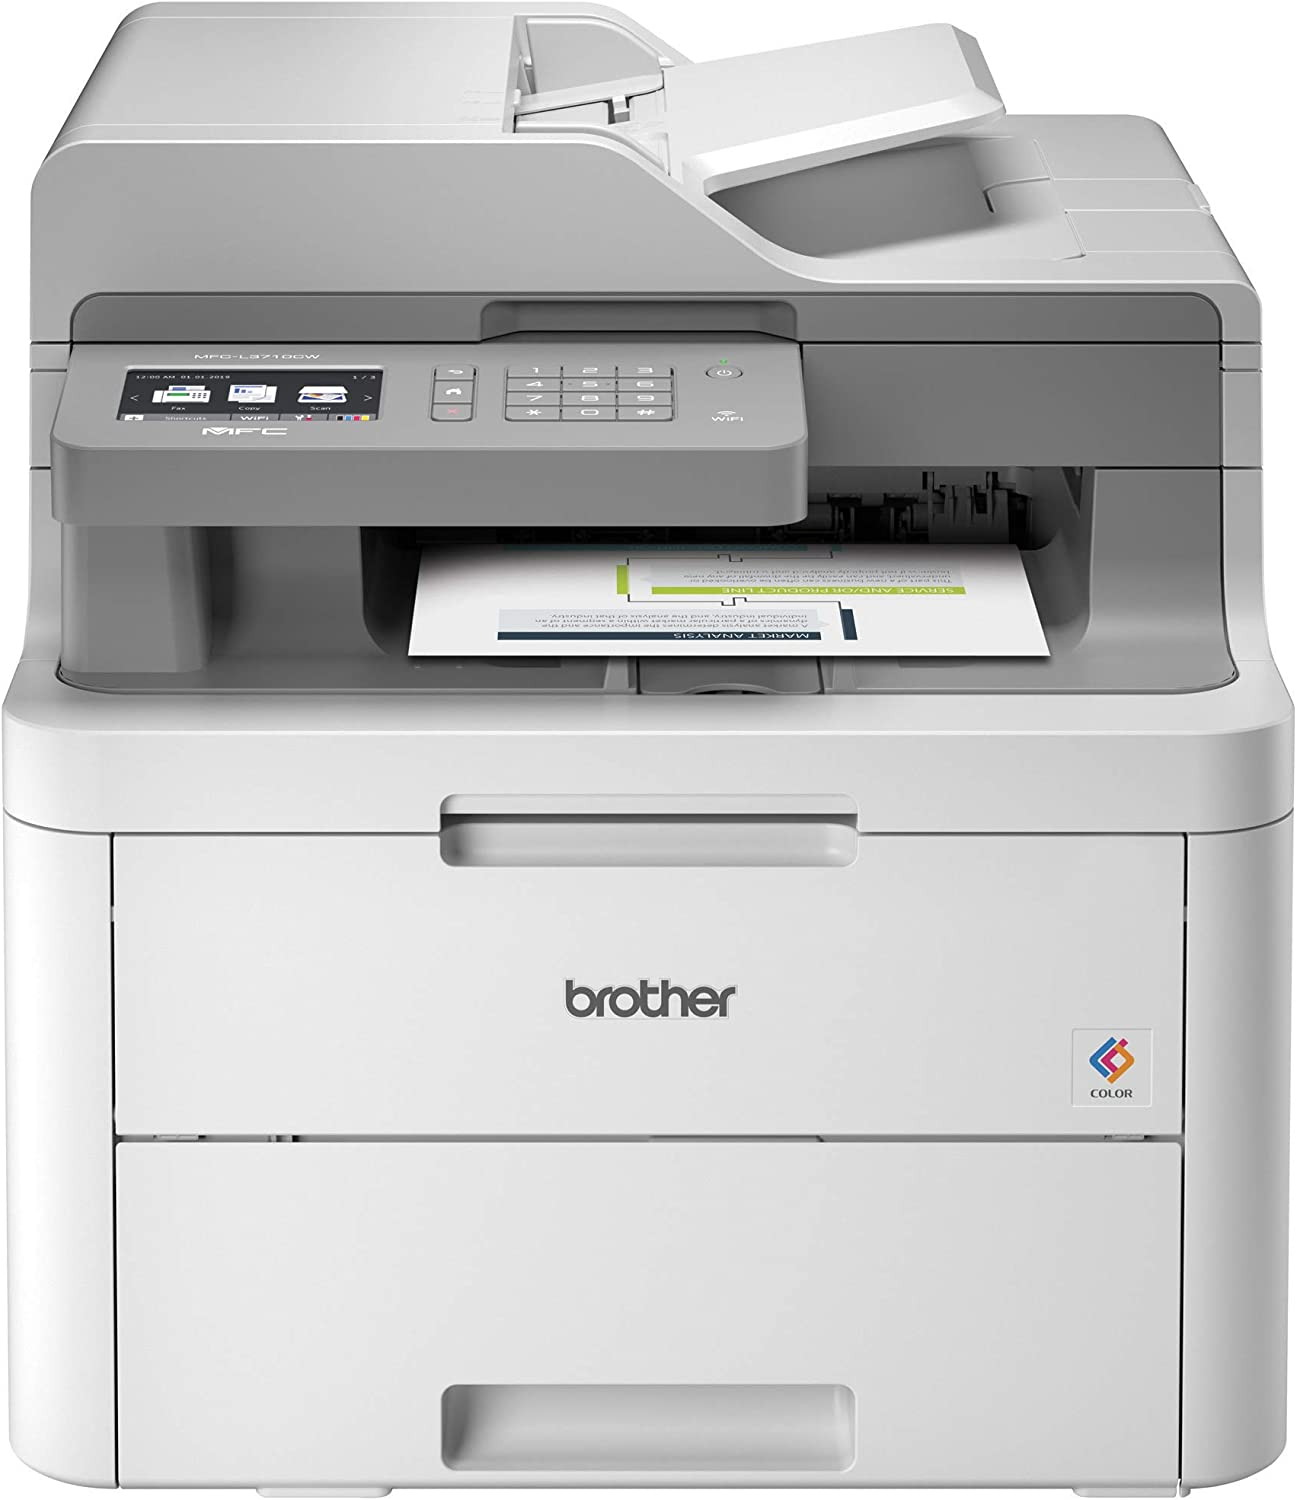 Amazon Com Brother Mfc L3710cw Compact Digital Color All In One Printer Providing Laser Printer Quality Results With Wireless Amazon Dash Replenishment Ready Electronics